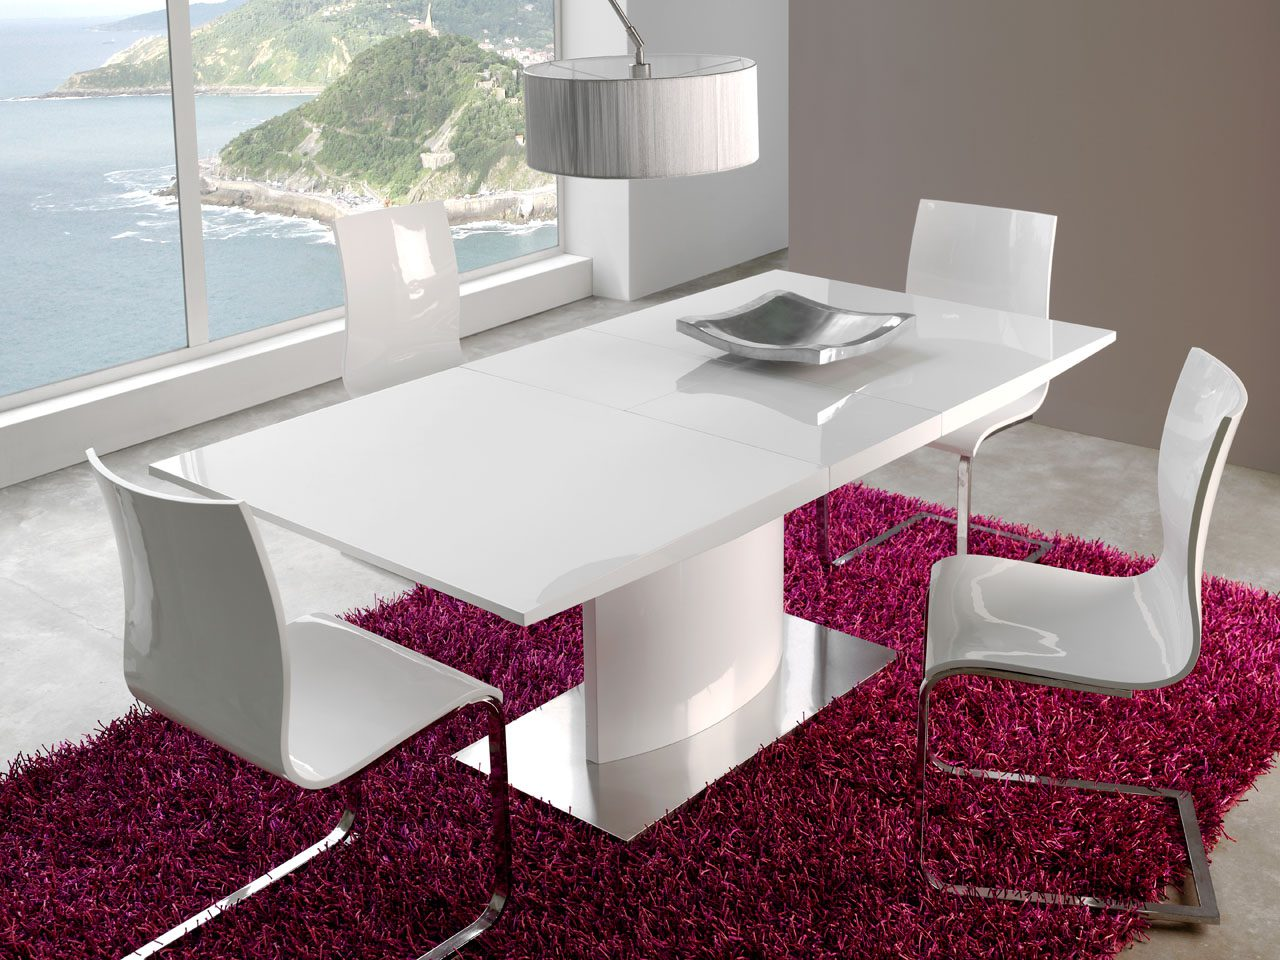 Table Height How To Choose The Standard Of The Product The Standard Dimensions Of The Legs The Average Height From The Floor